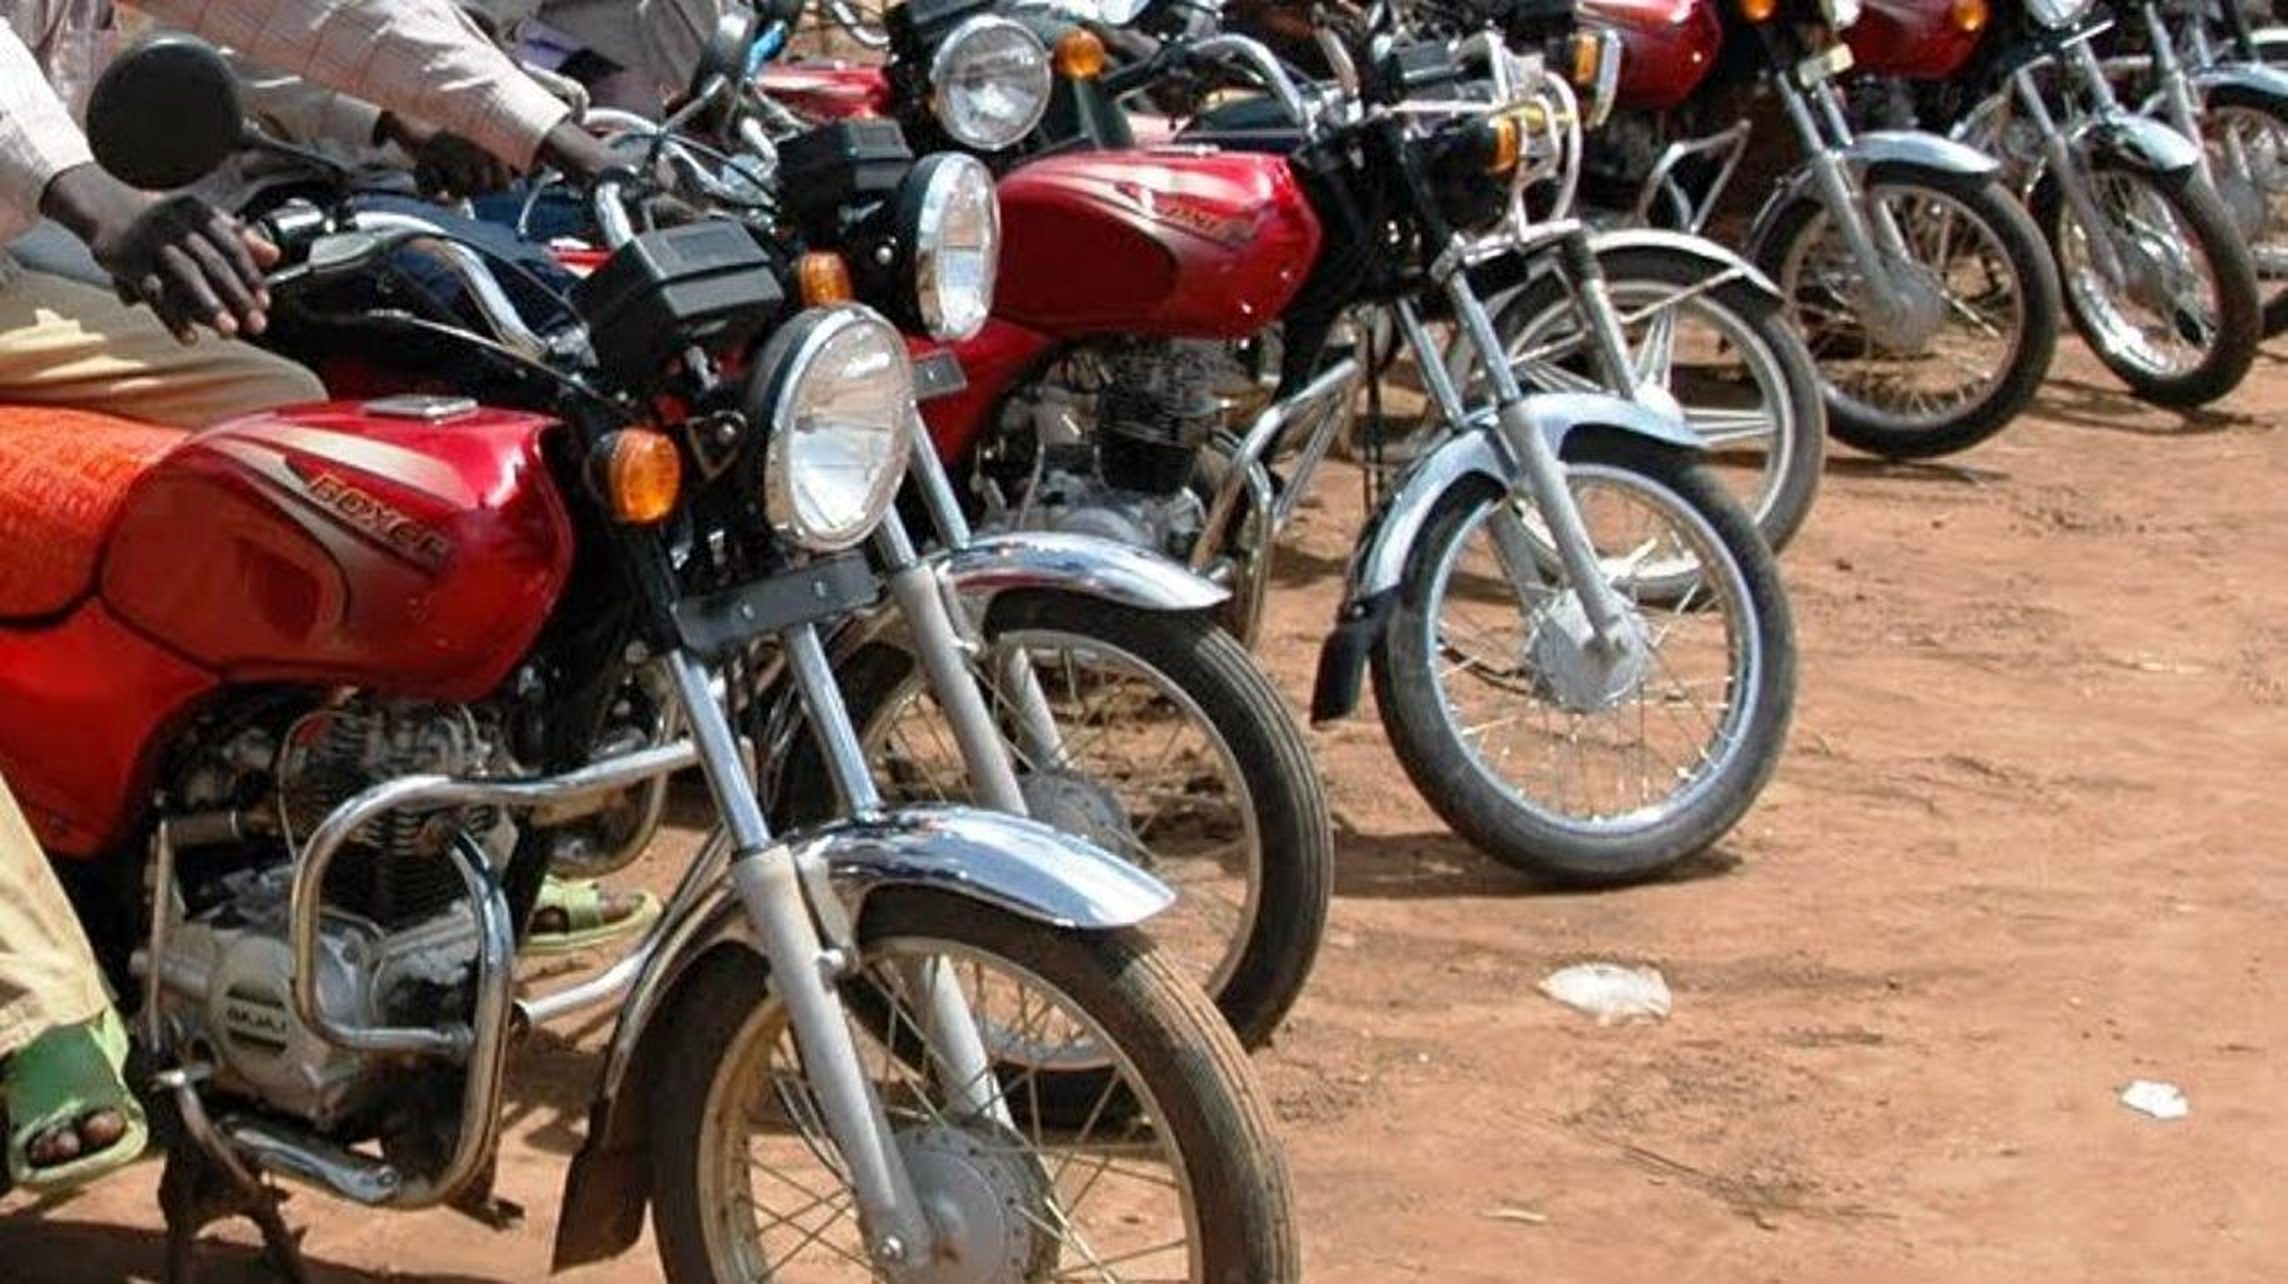 The suspected bodaboda thief was cornered by other riders before the angry mob lynched him